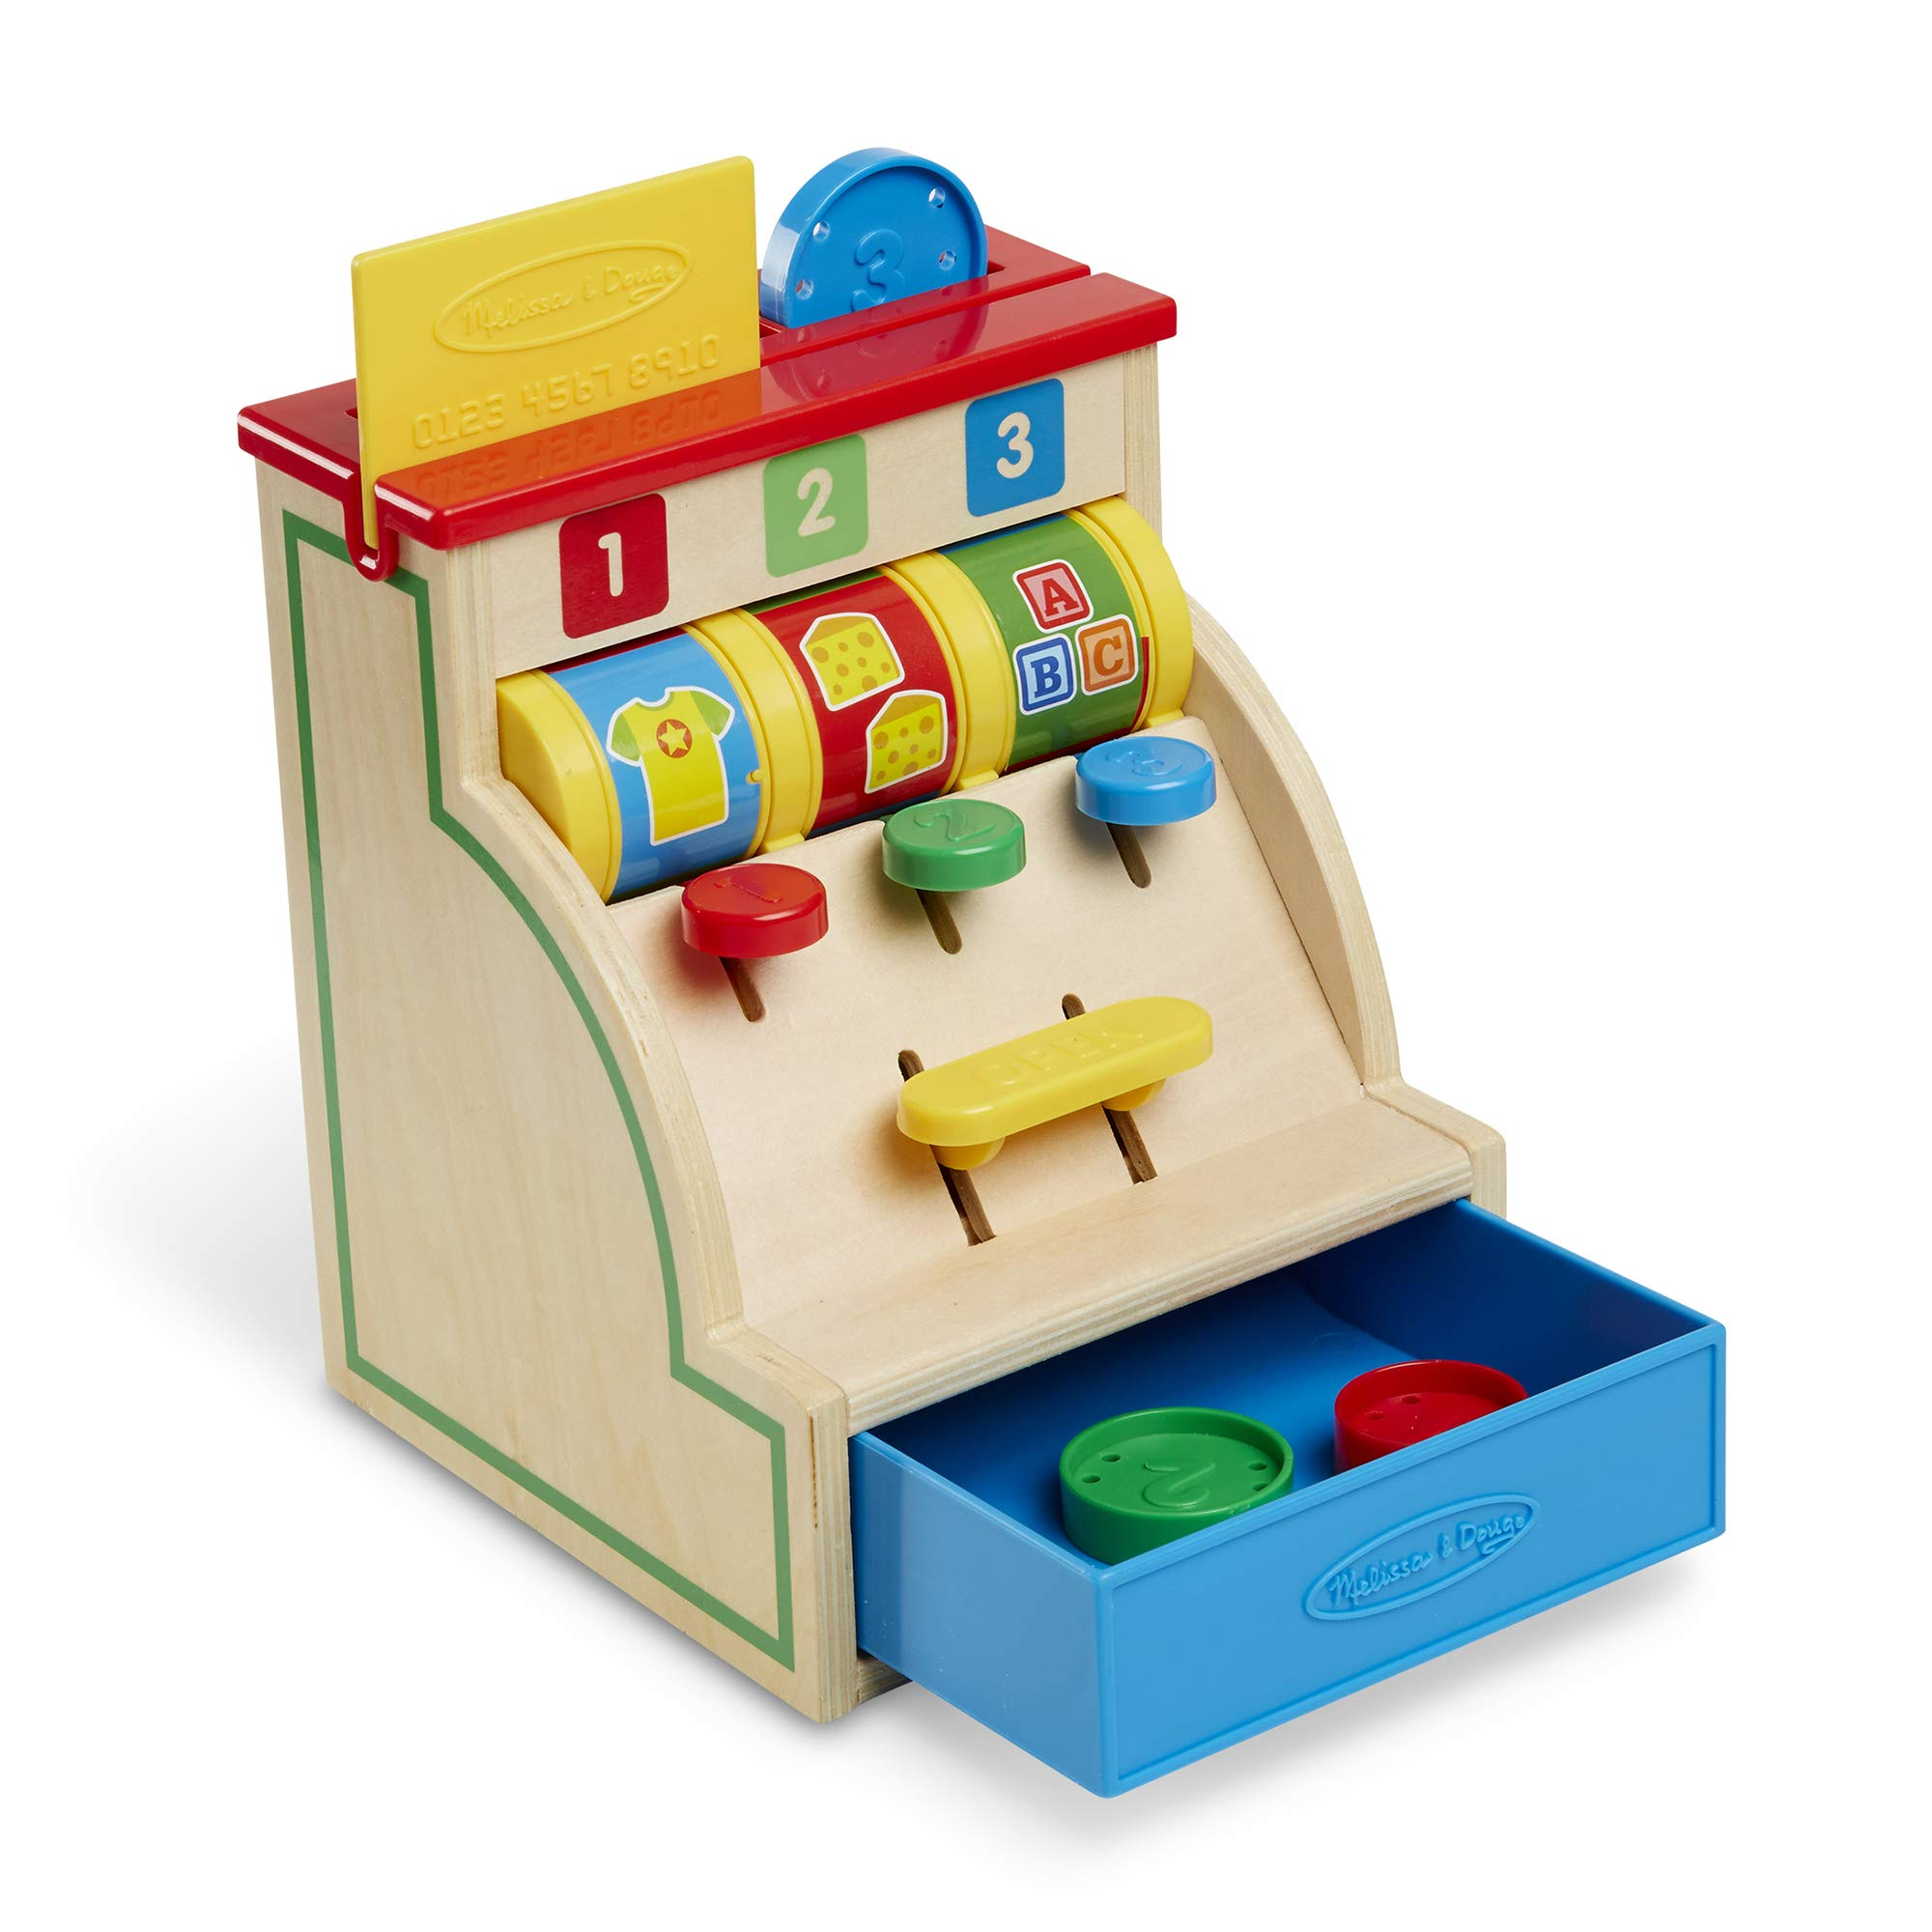 Melissa & Doug Spin & Swipe Wooden Cash Register (Developmental Toy, Great Gift for Girls and Boys - Best for 3, 4, 5, and 6 Year Olds) by Melissa & Doug